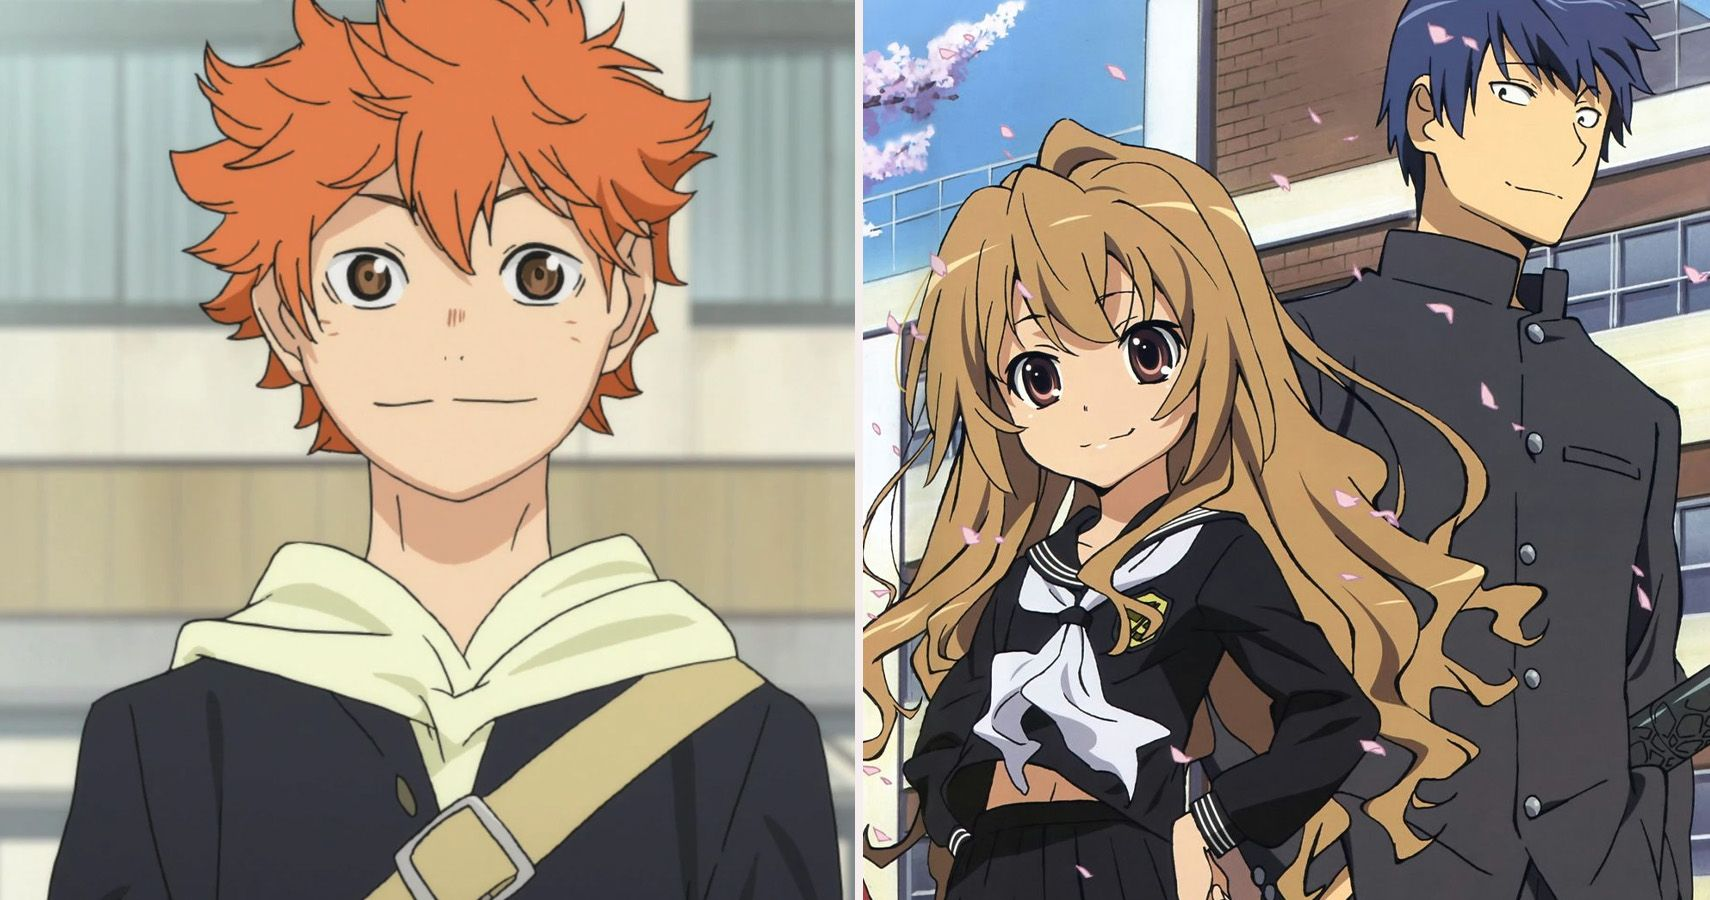 What Anime Character Archetype Are You Based On Your Zodiac Sign?